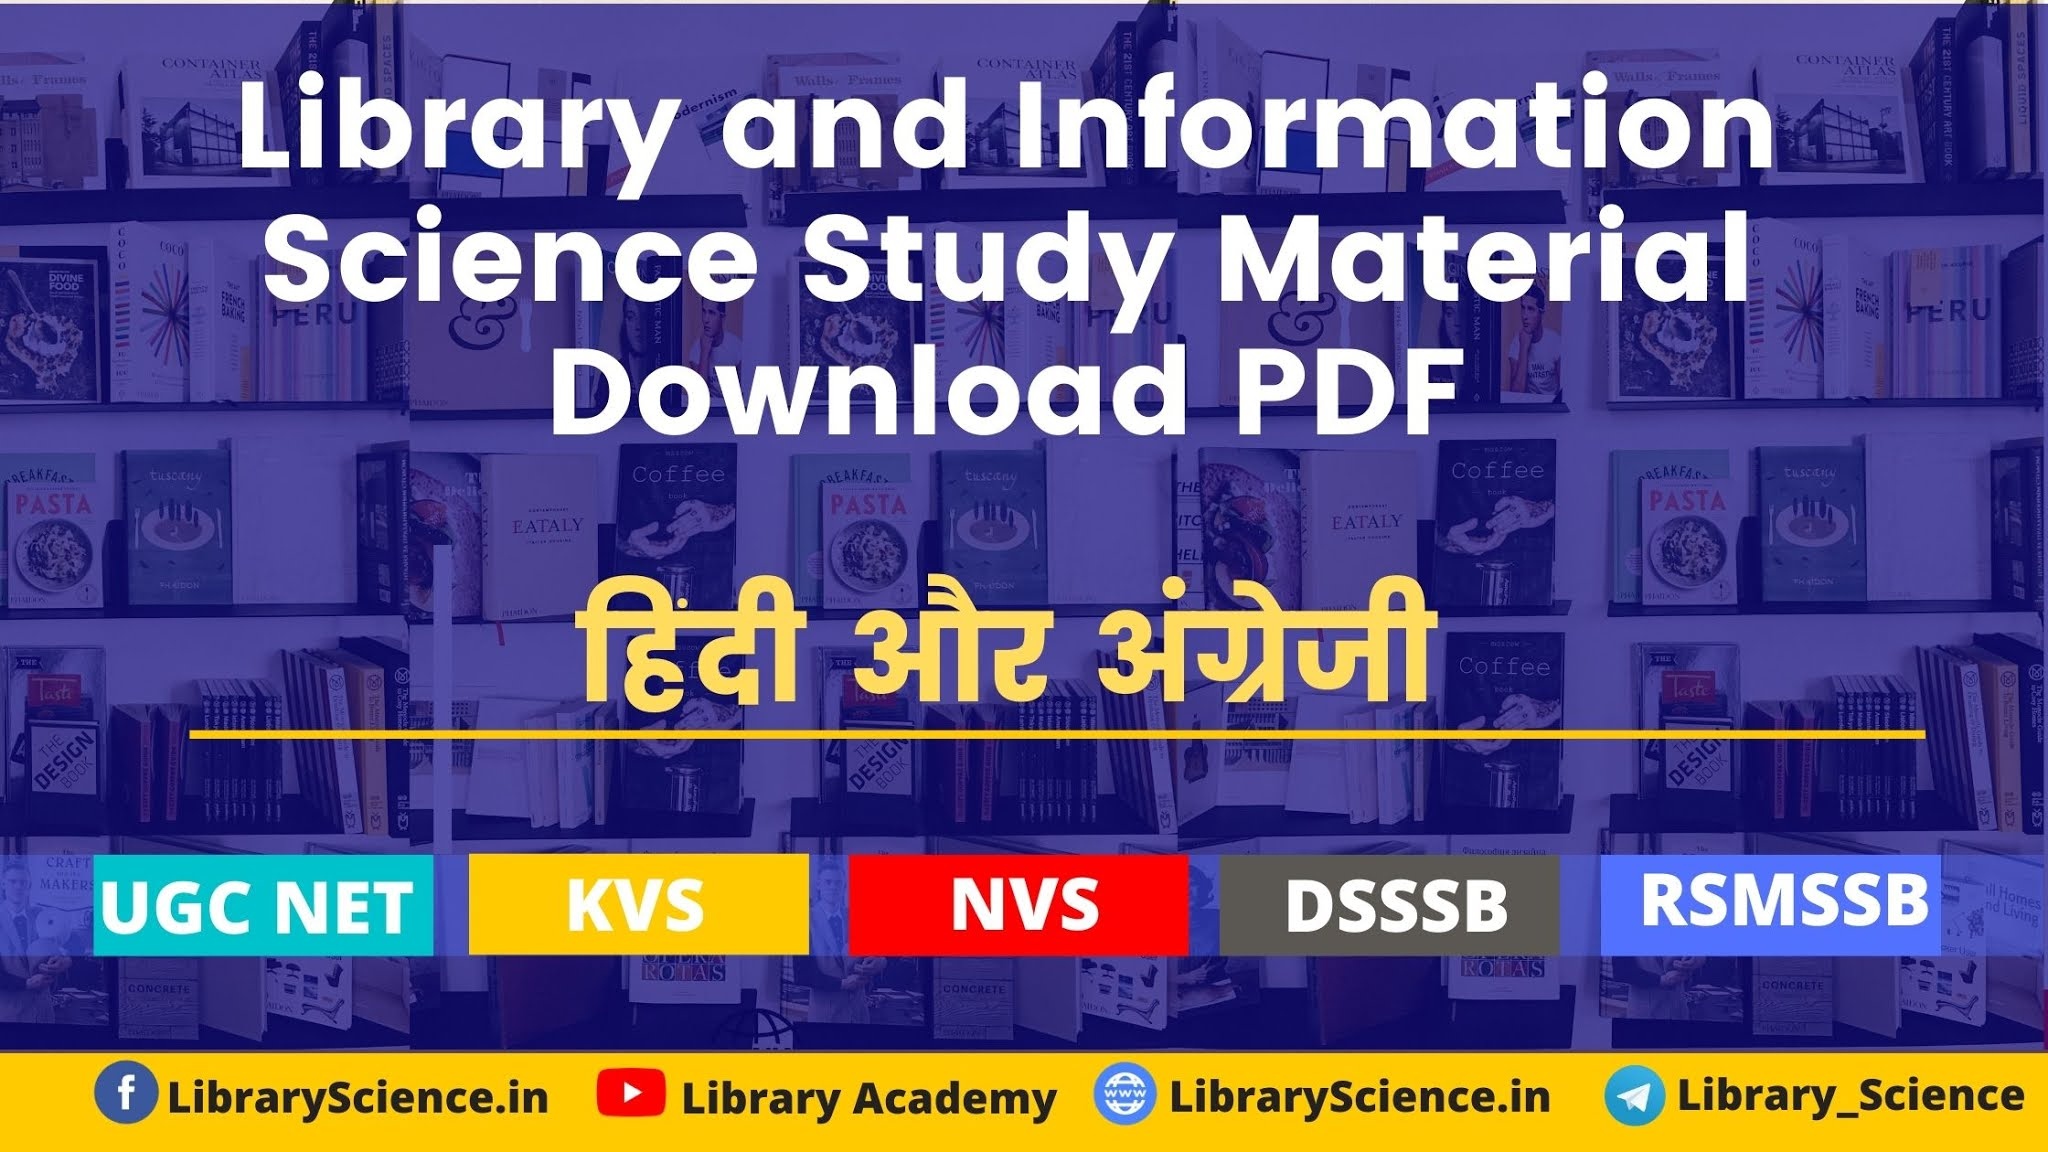 Library and Information Science Study Material